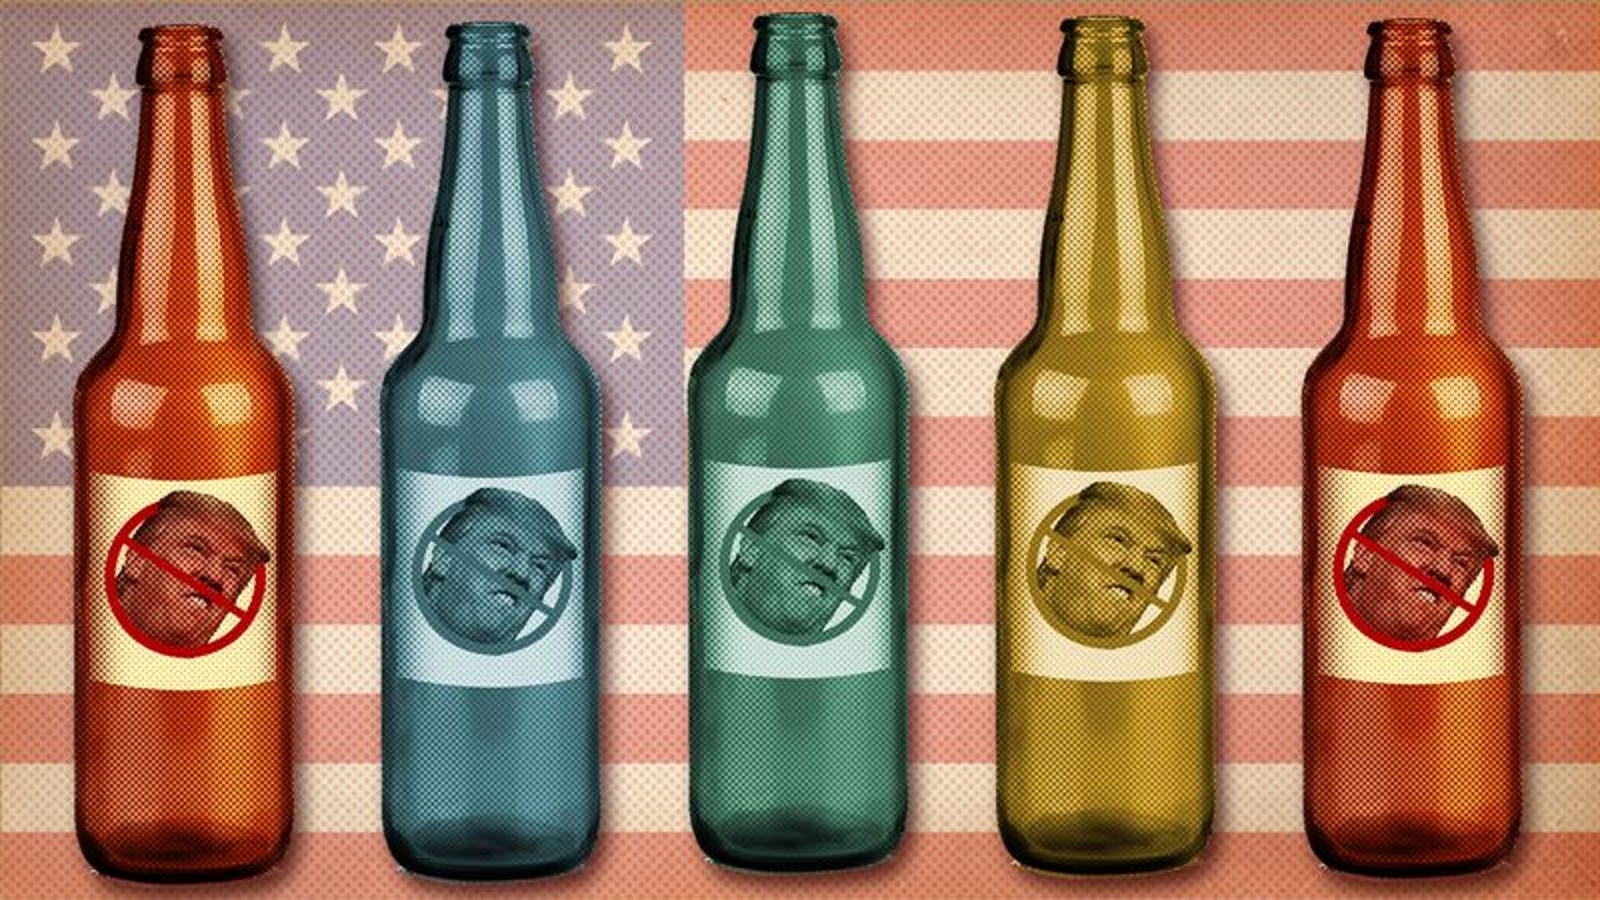 The Onion Craft Beer